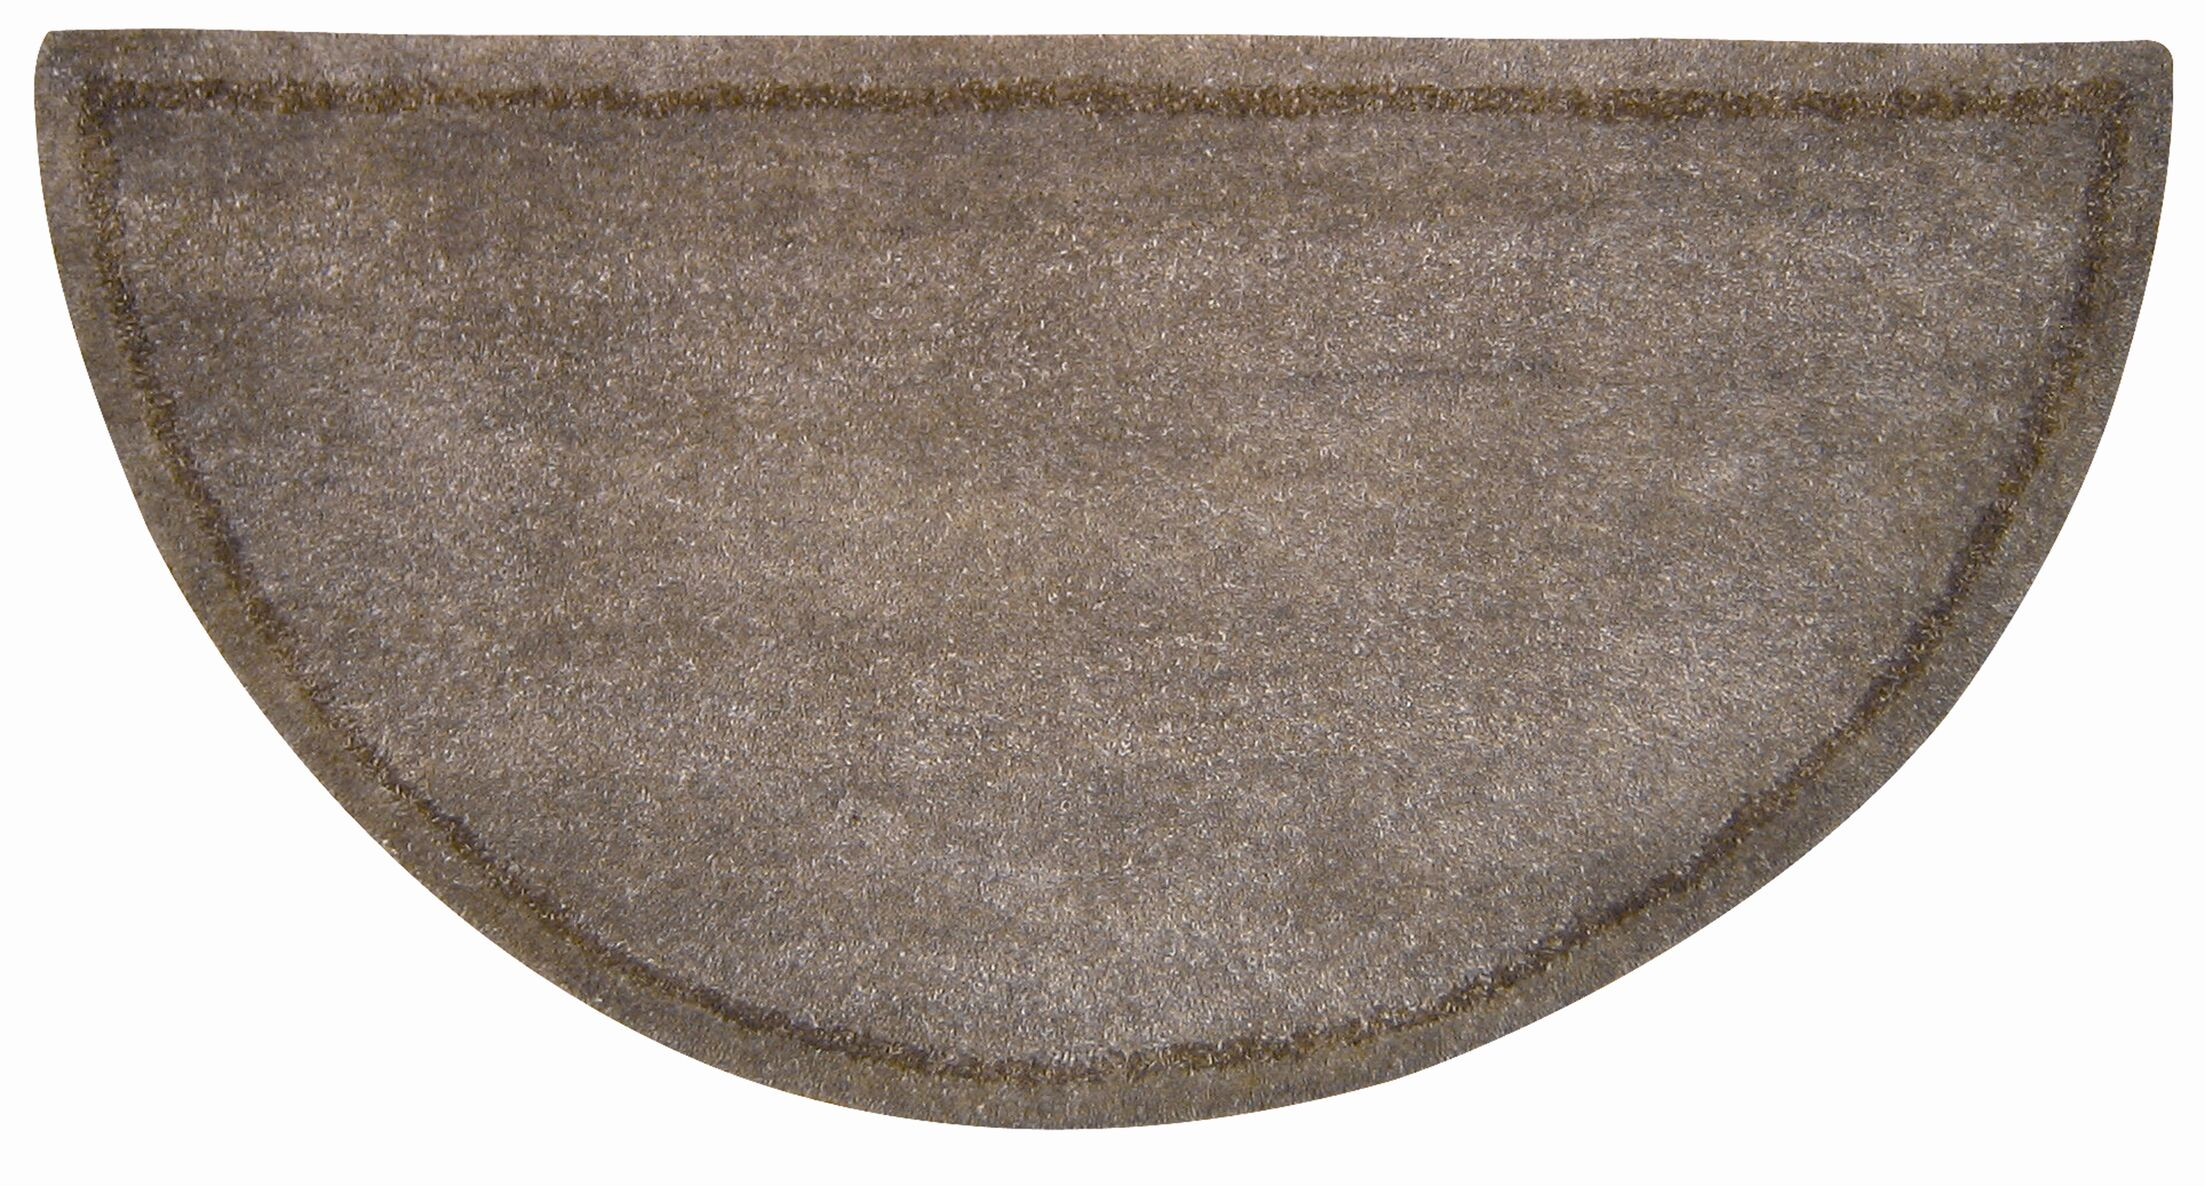 Hearth Hand-Tufted Brown Wool Area Rug Rug Size: 1'10